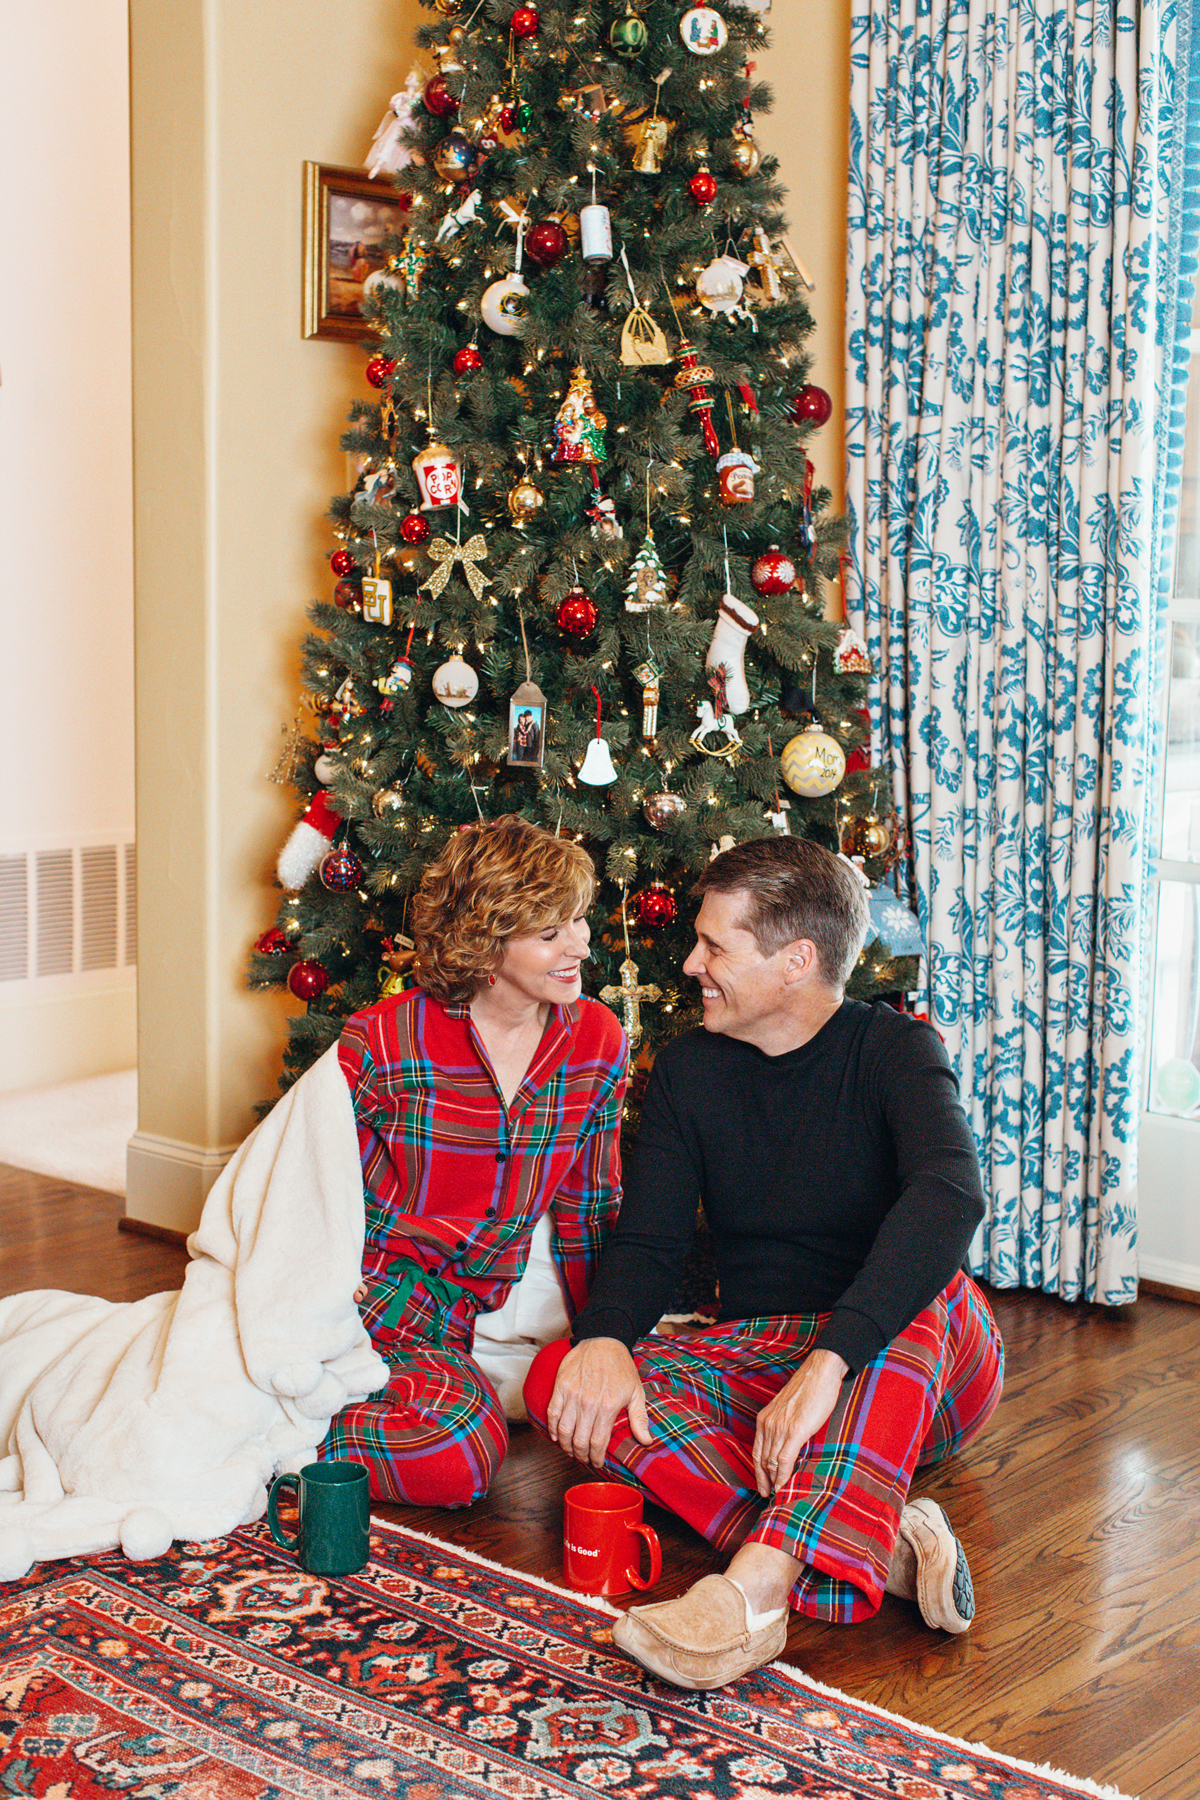 woman and man in red holiday pajamas sitting in front of Christmas tree